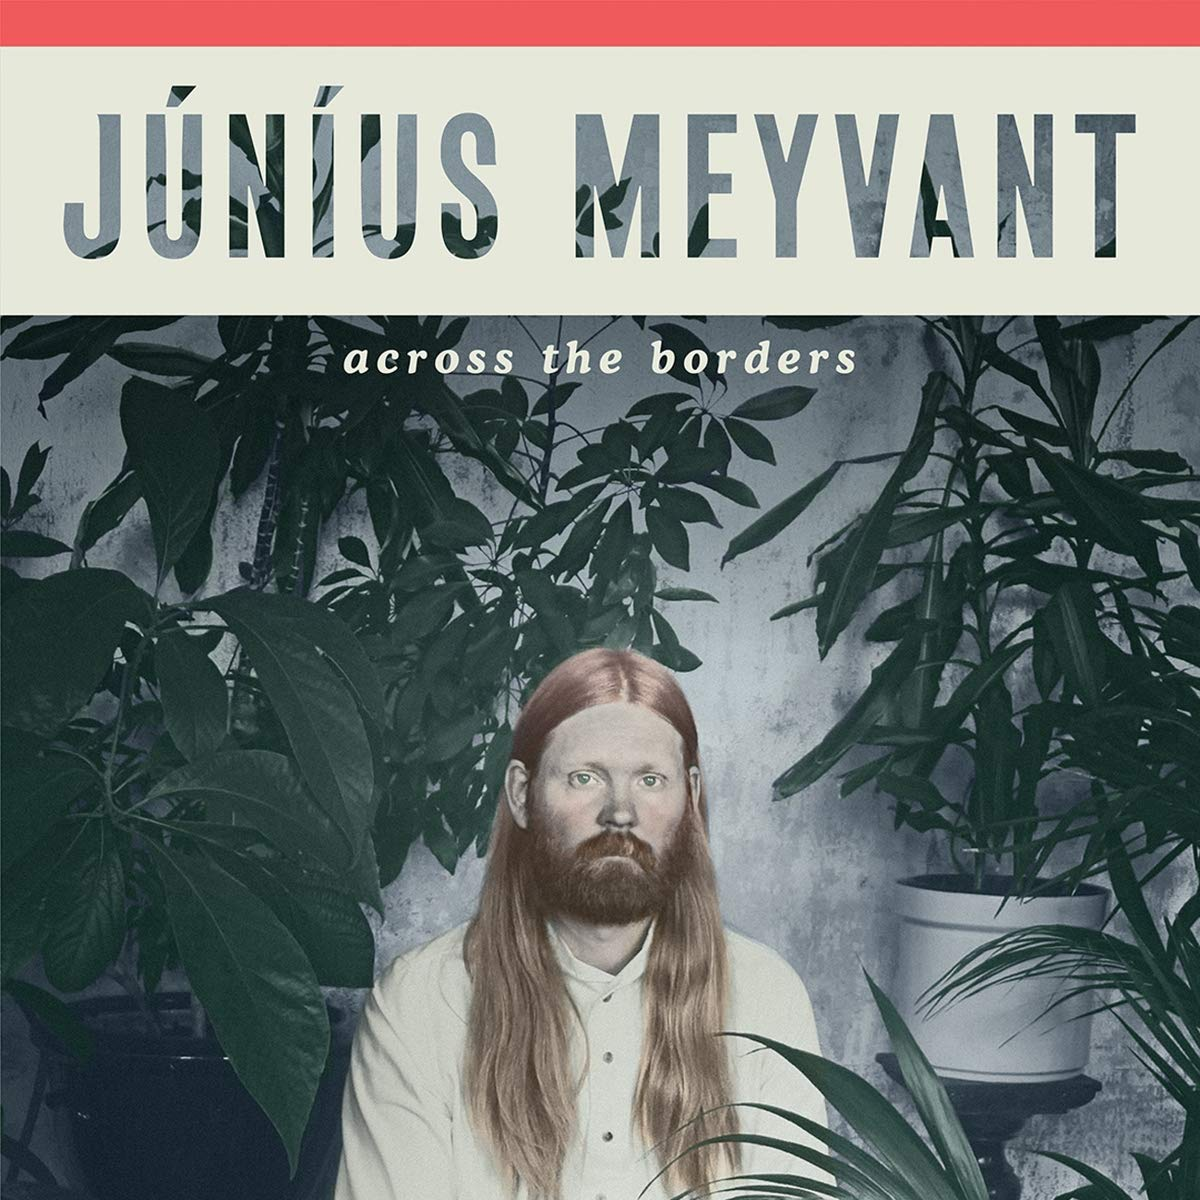 Junius_Meyvant_-_across_the_borders.jpg